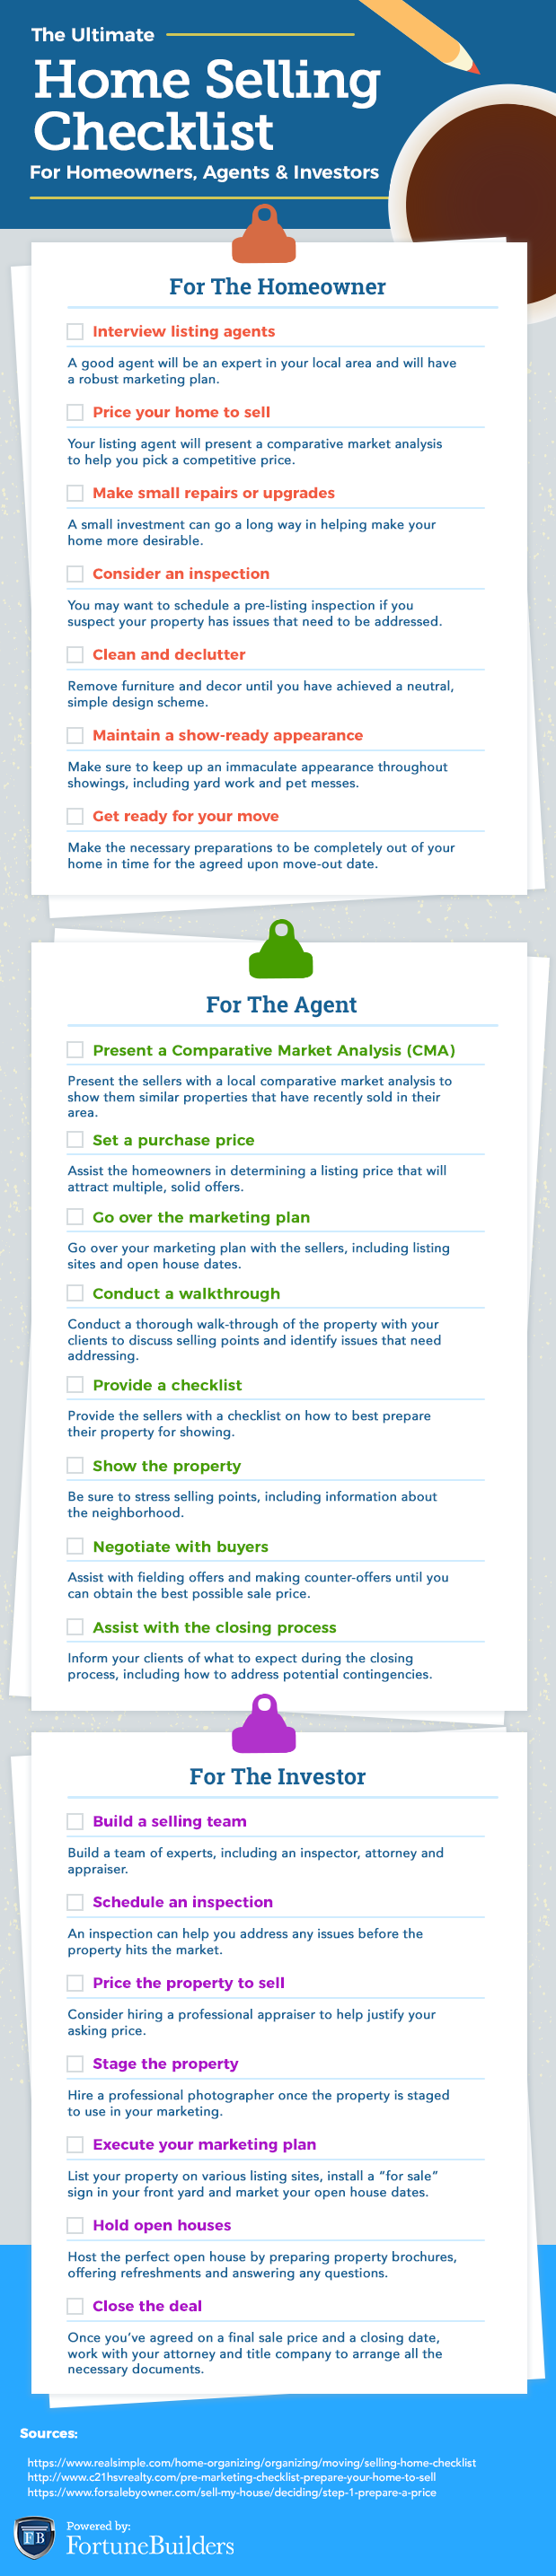 home-selling-checklist